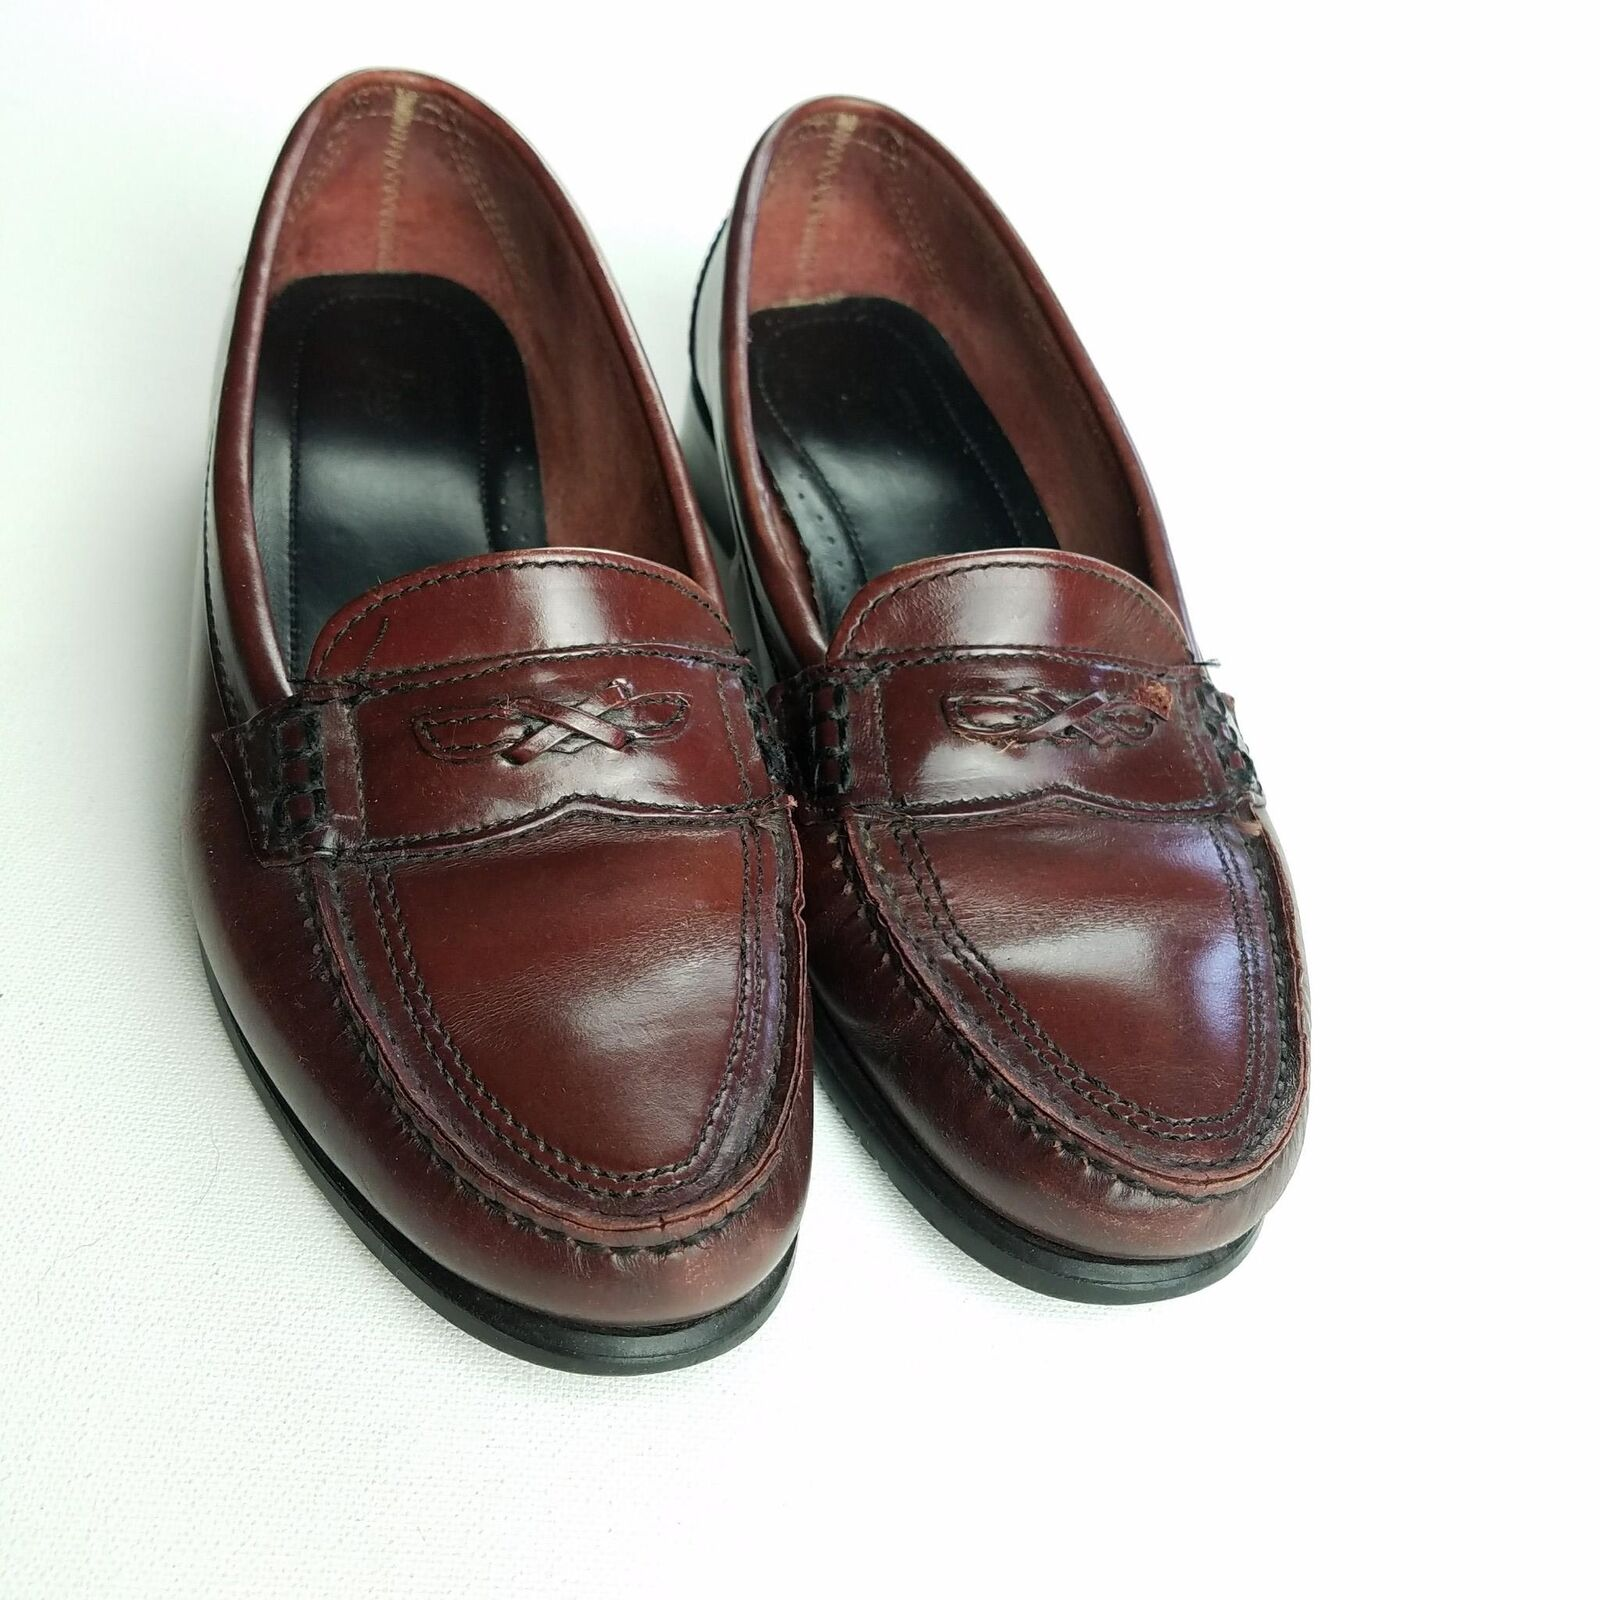 G. H. Bass & Co Shoes Penny Loafers Mens Size On 8.5 Leather Flat Slip On Size Brown 46b842